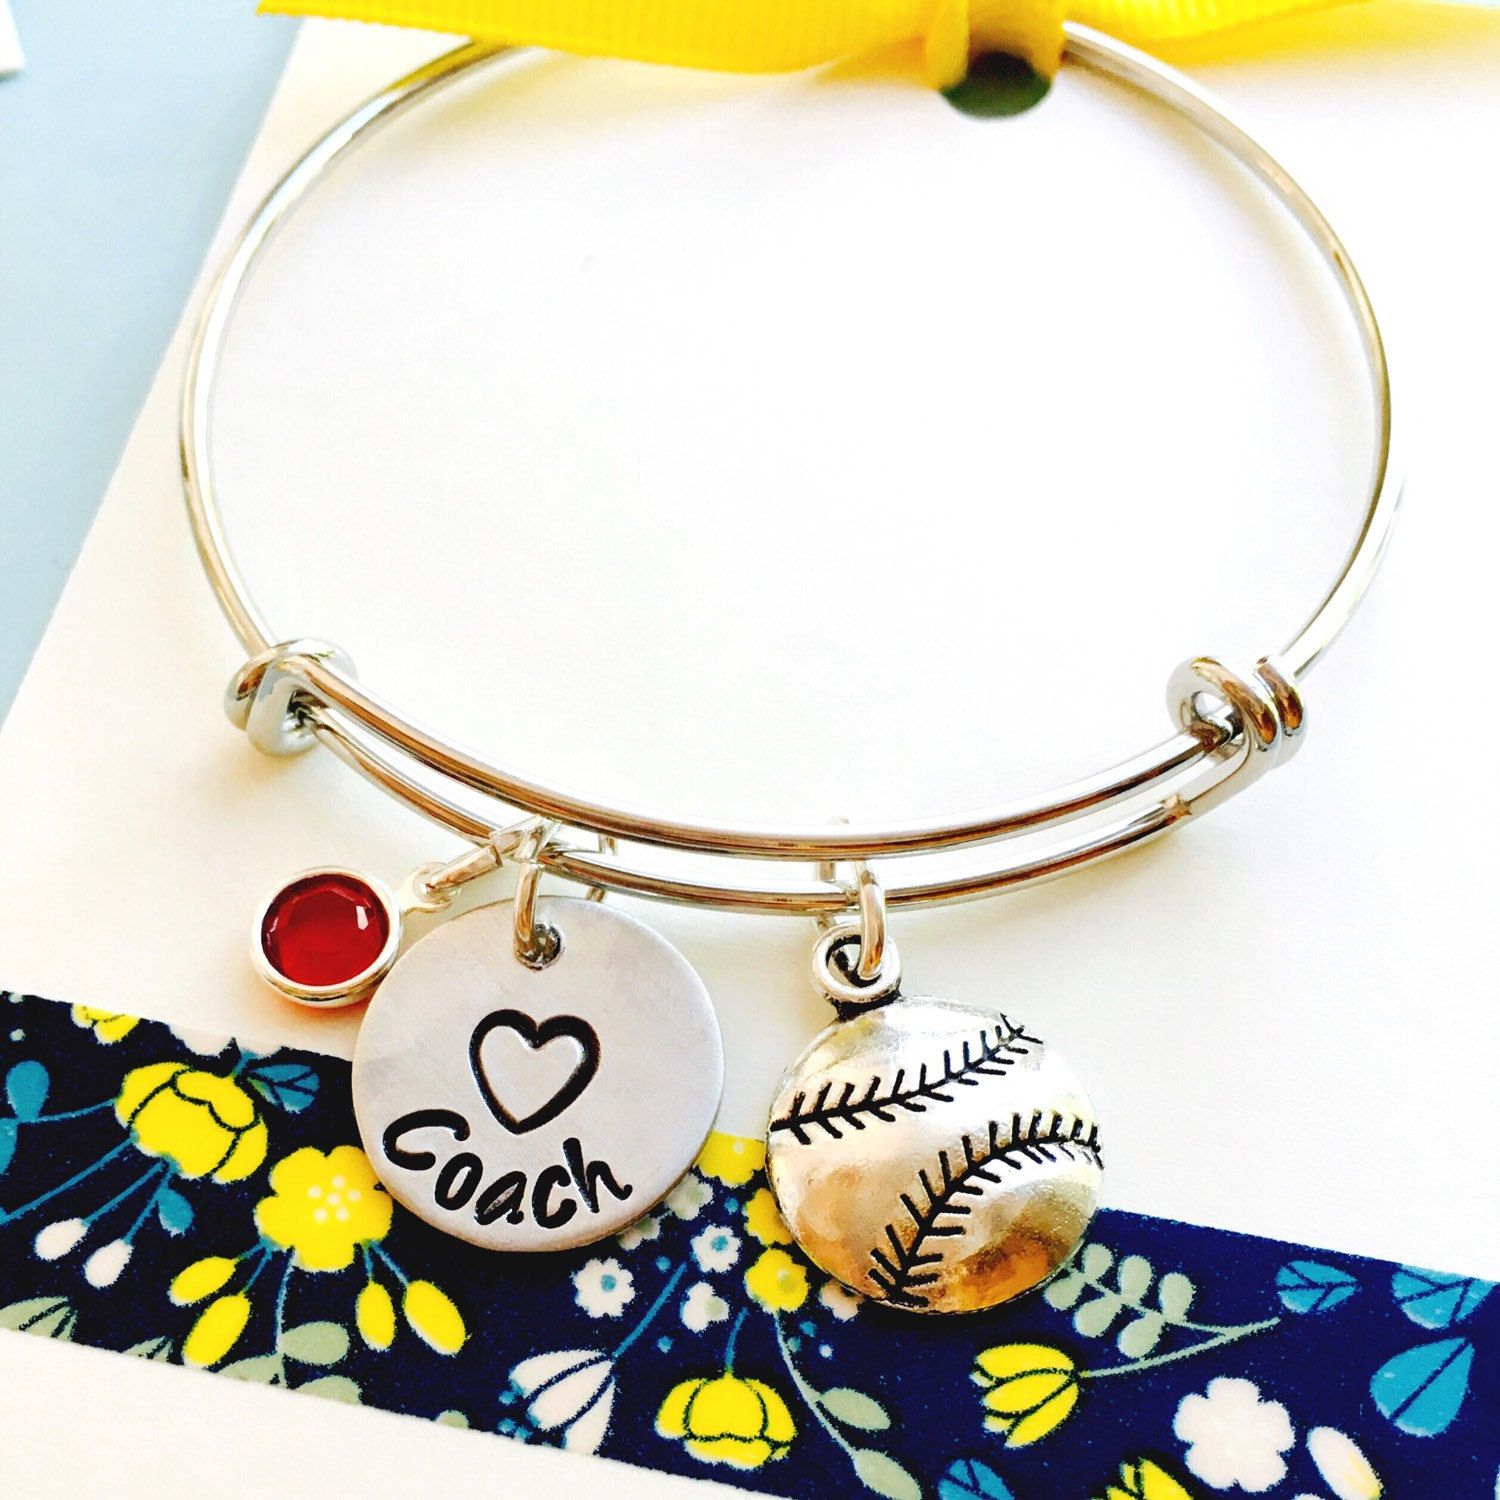 girl bracelets girls bangle bangles tone gold bracelet charm emoji